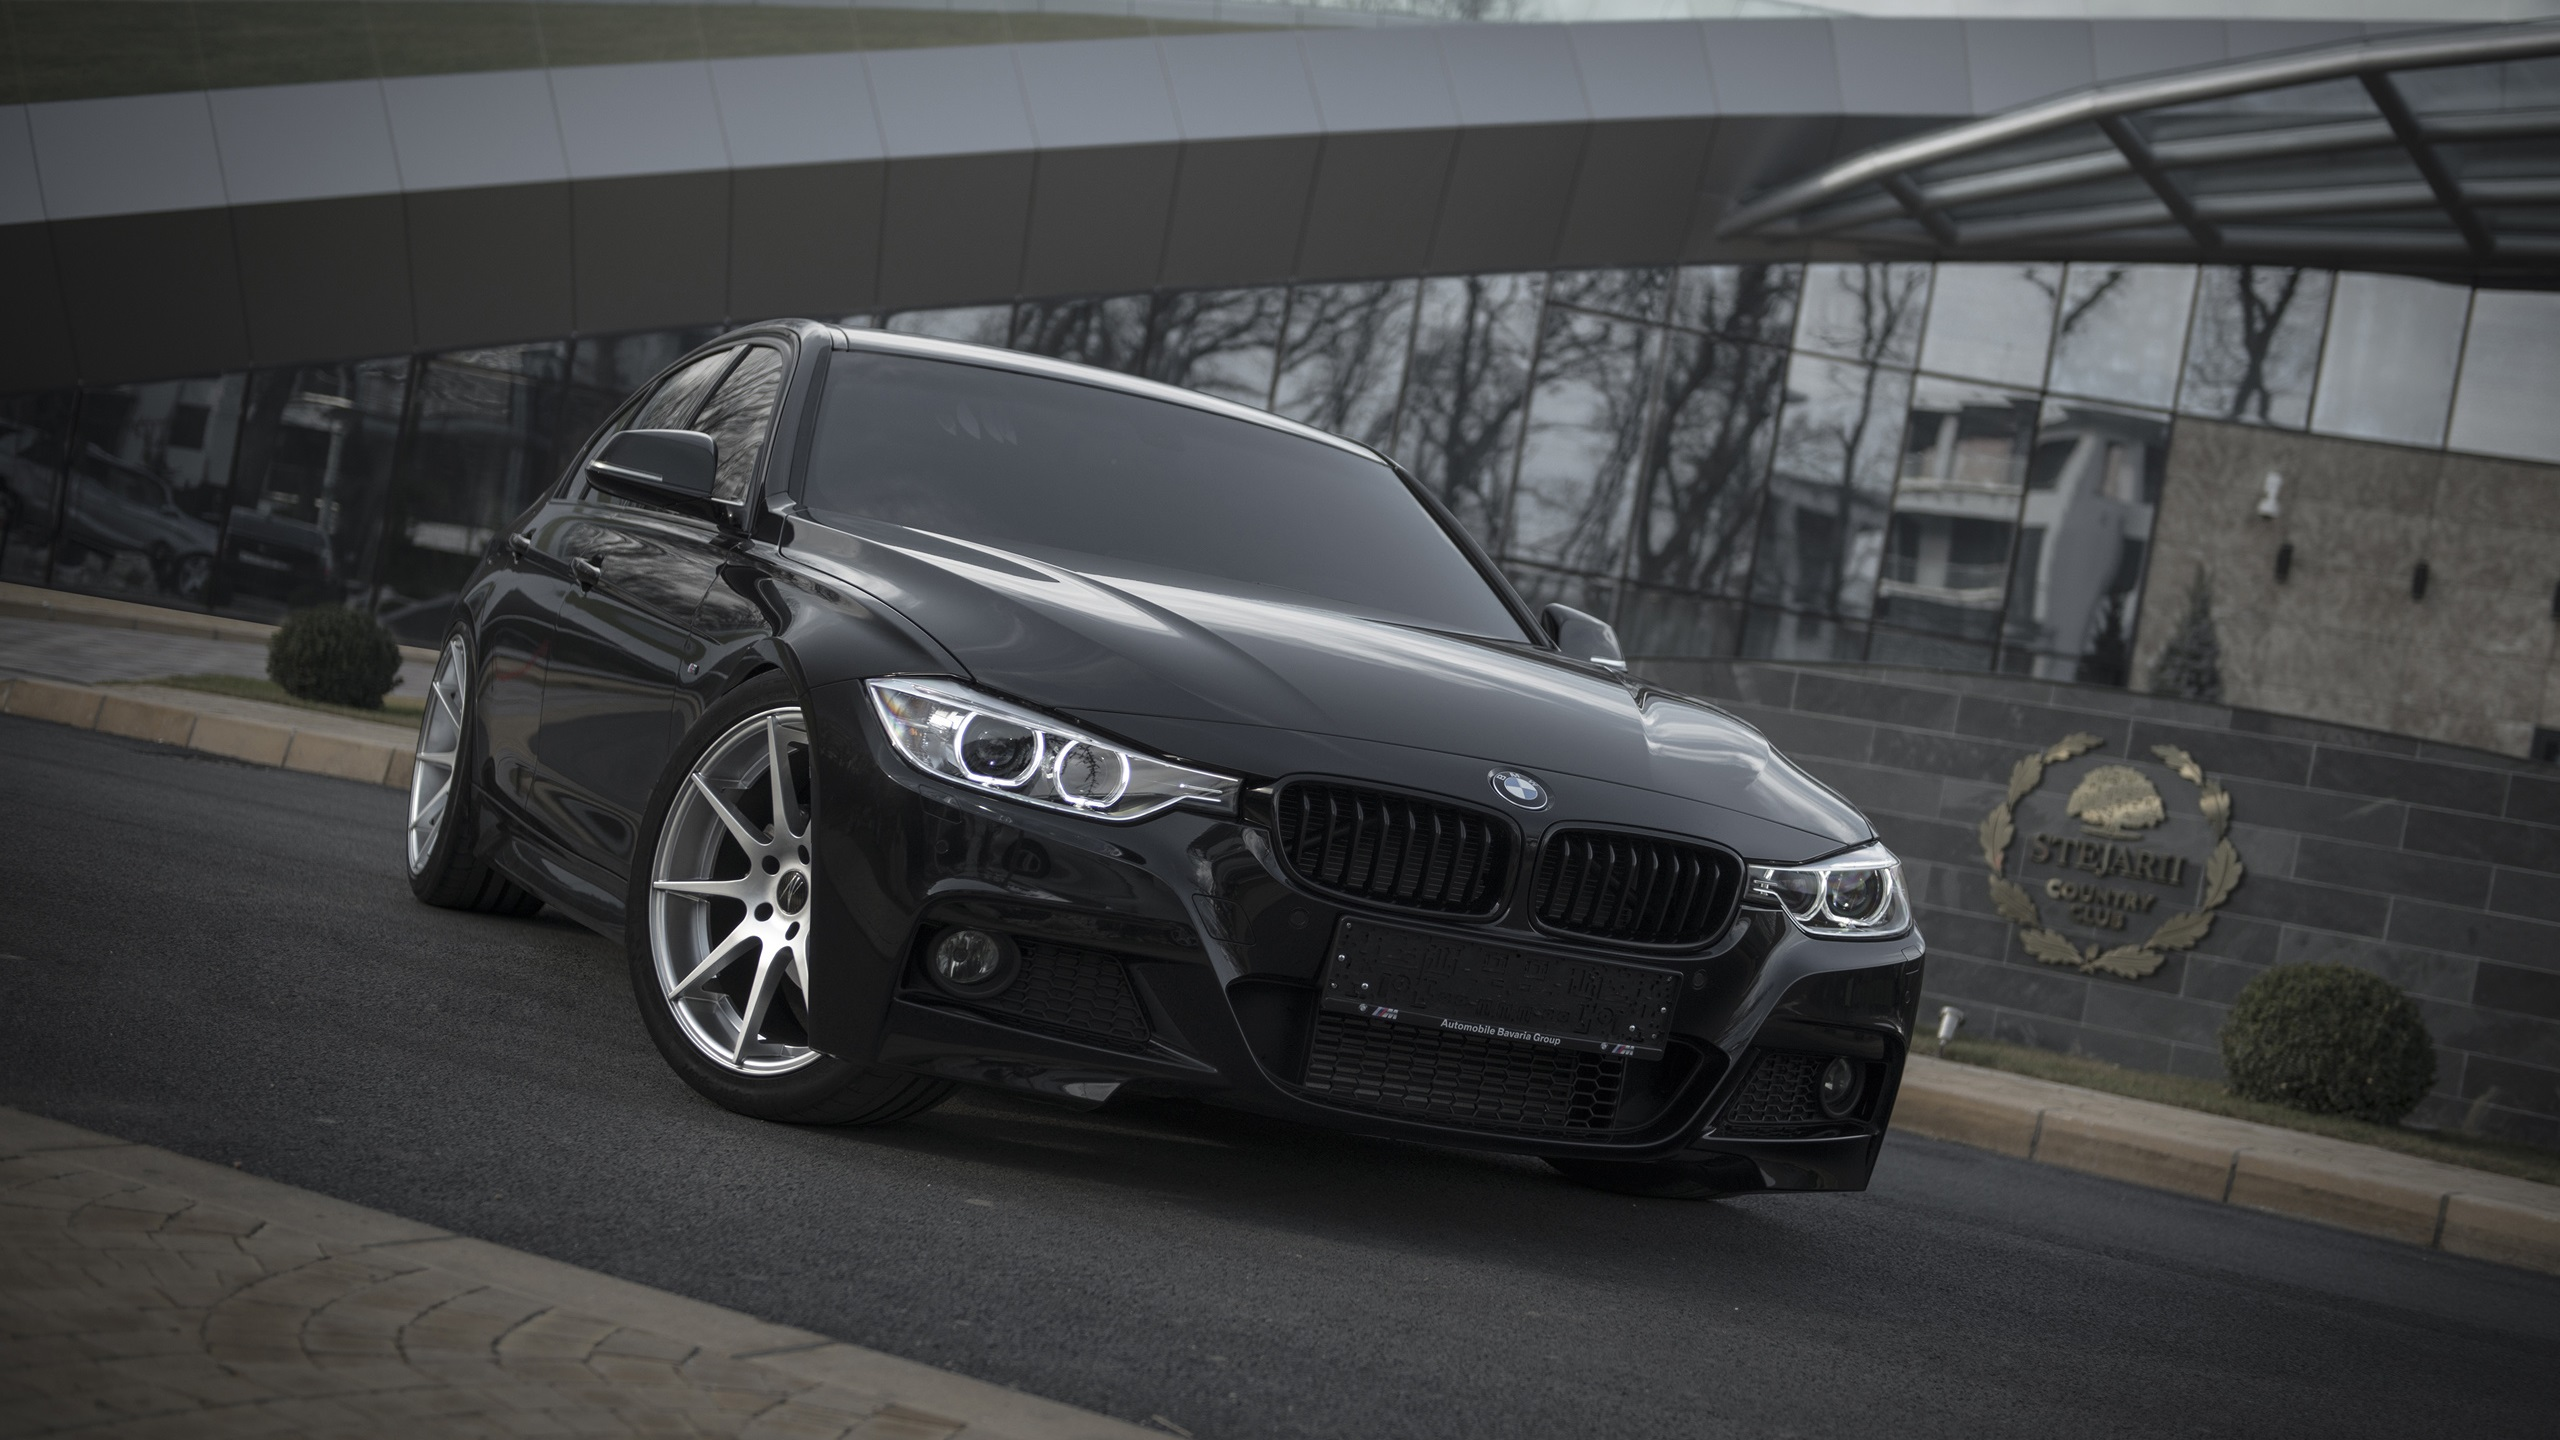 Wallpaper Bmw F30 Black Car Front View 2560x1600 Hd Picture Image